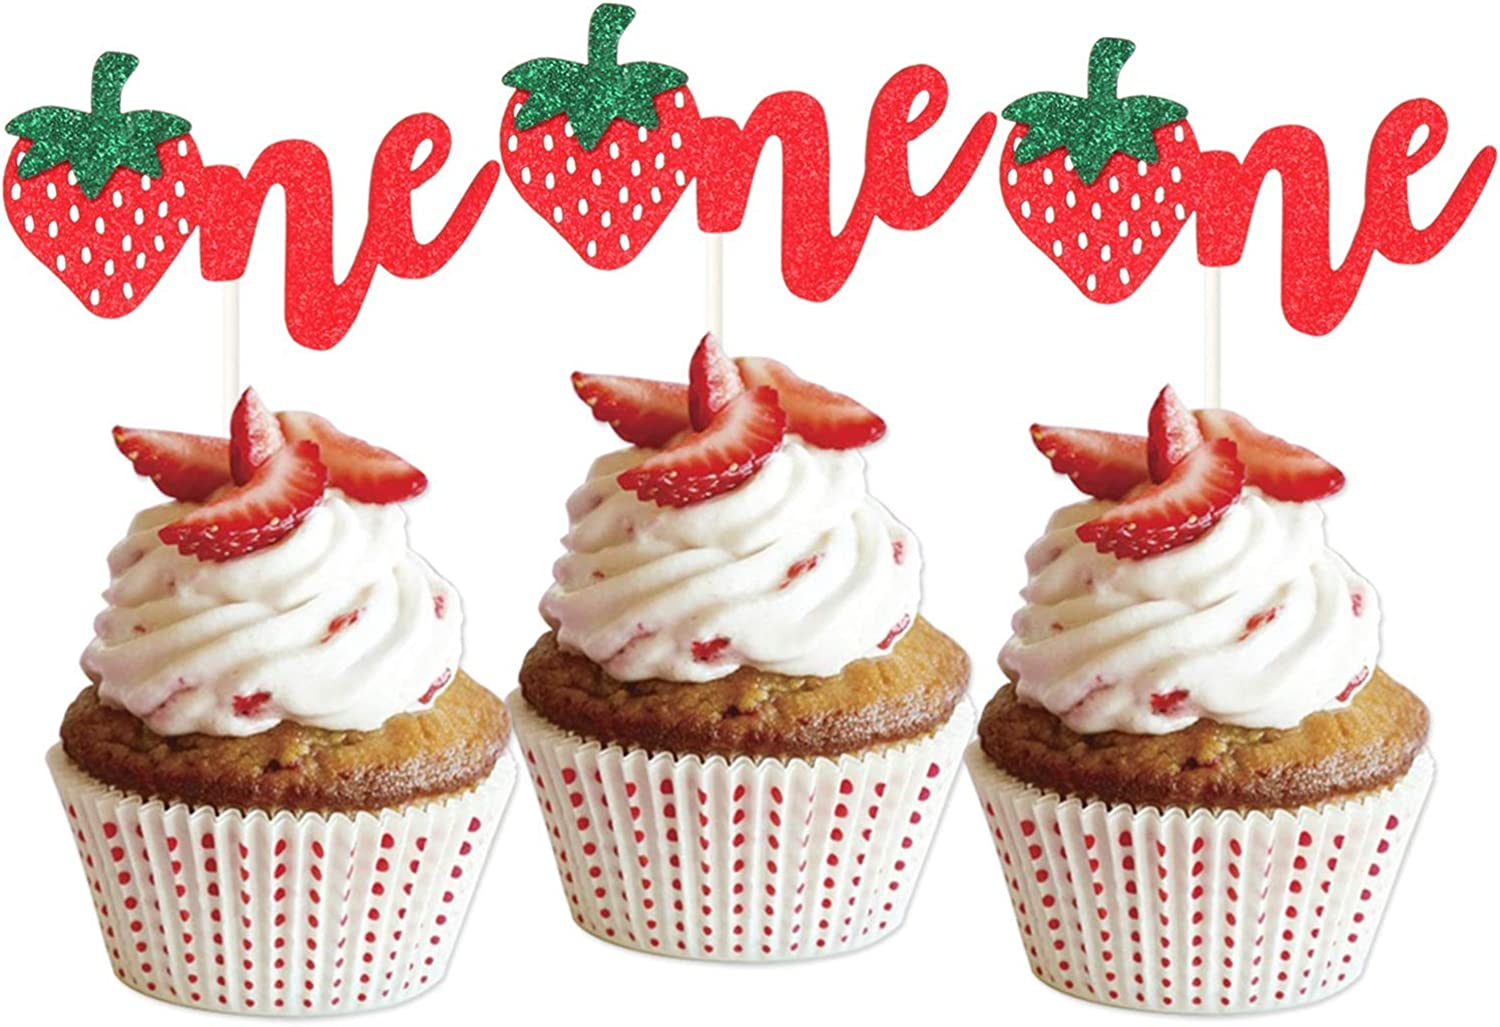 LILIPARTY 24Pcs Glitter Strawberry One Cupcake Toppers Fruits Theme Party Dessert Cupcake Picks for Summer 1st Birthday Wedding Party Baby Shower Summer Garden Party Decoration Supplies